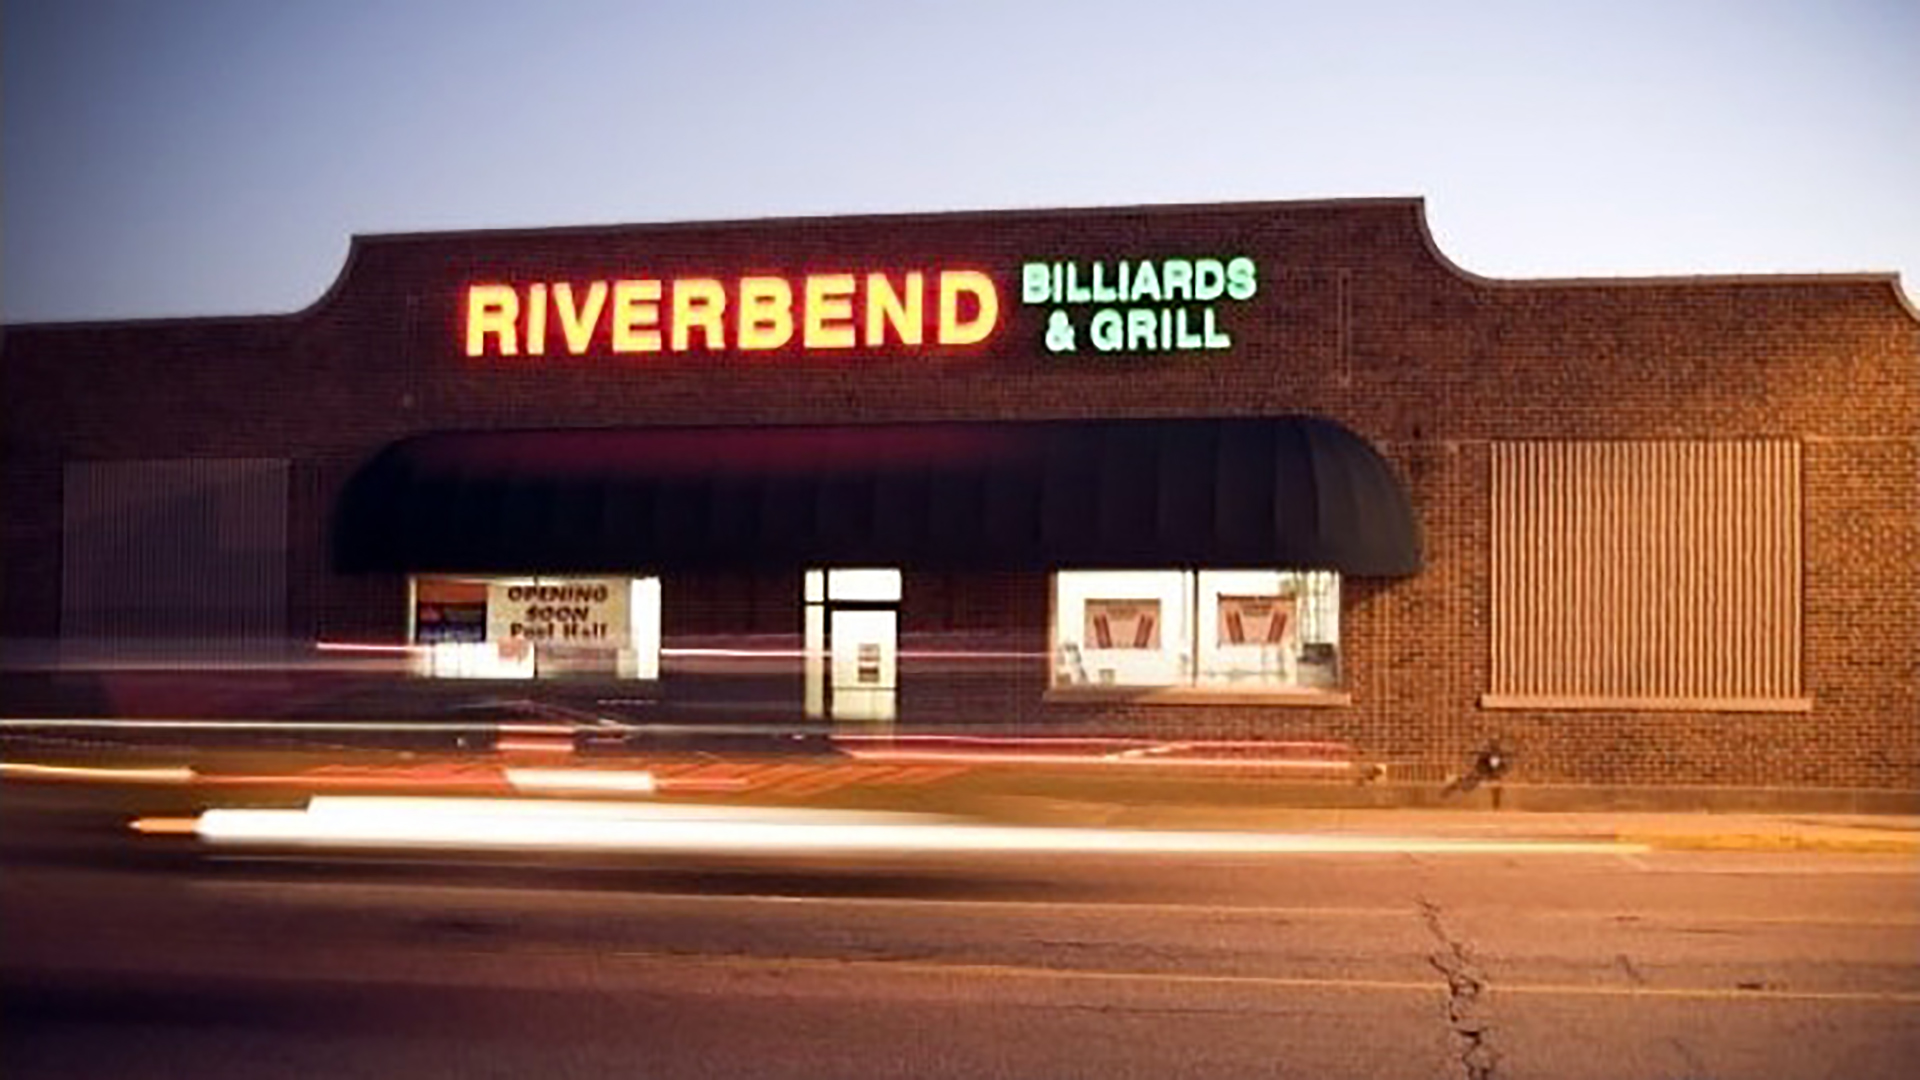 Riverbend Billiards & Grill | Your Site Name